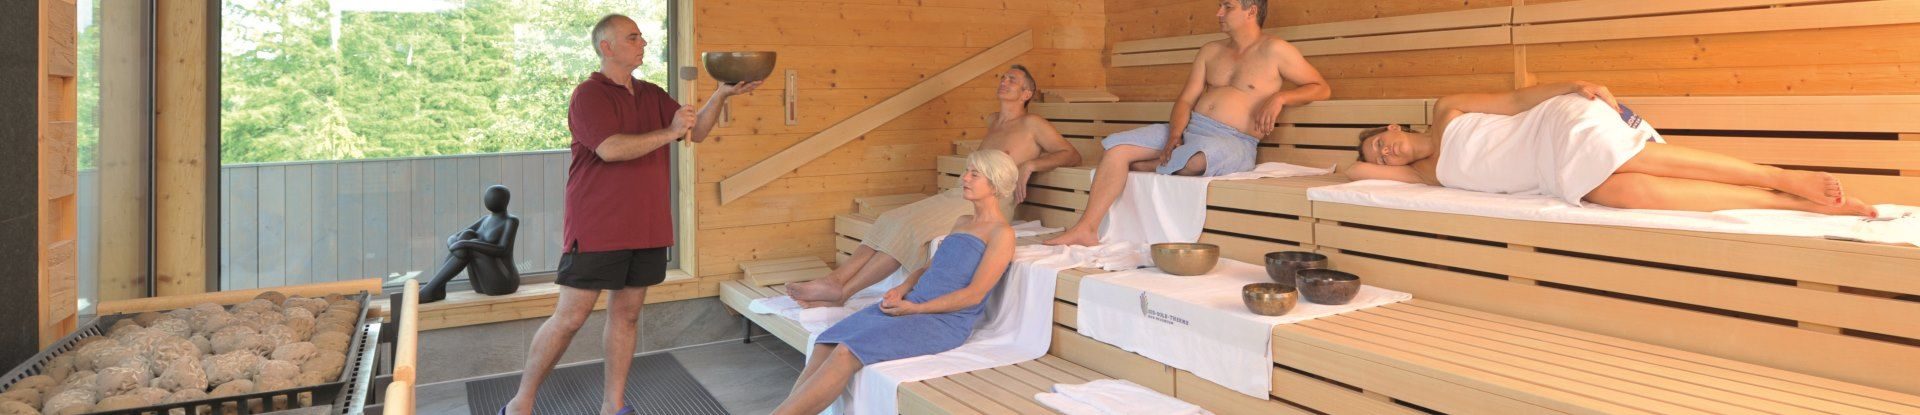 Jod-Sole-Therme Saunabereich